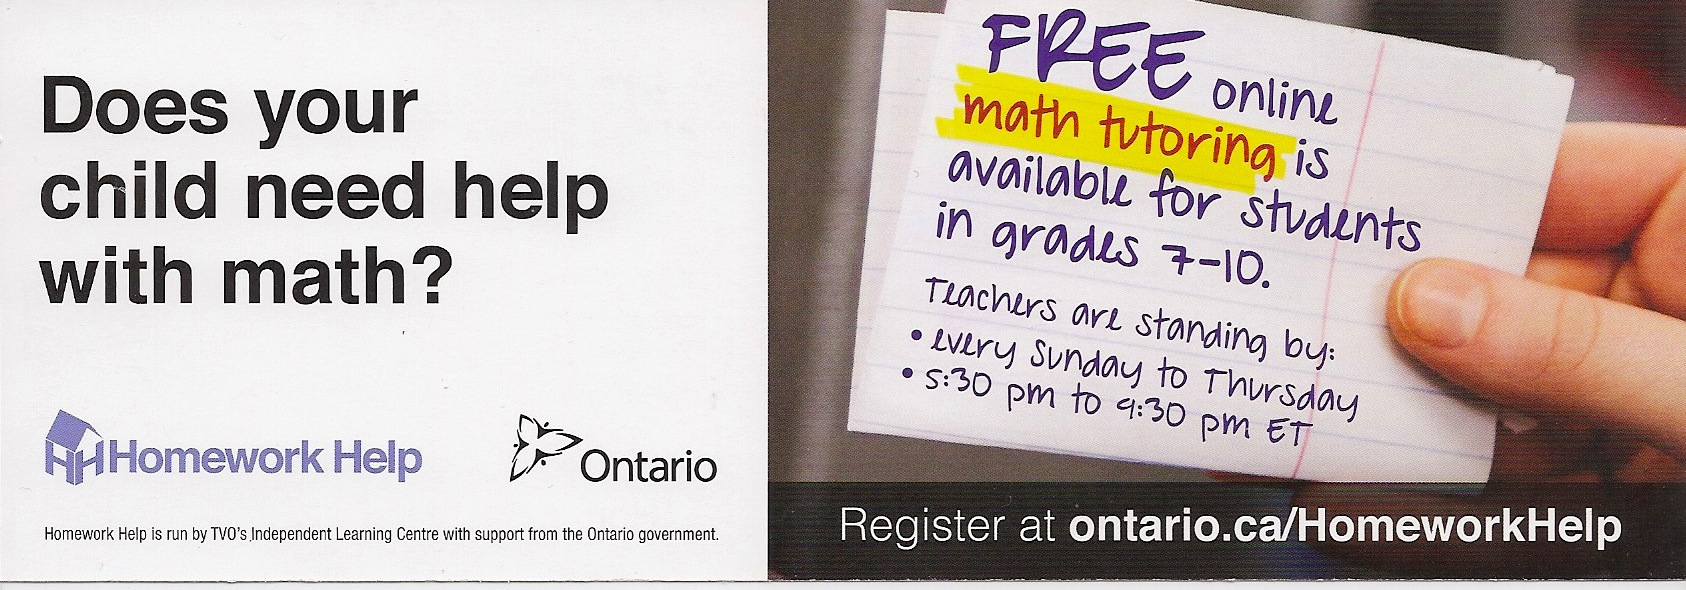 Homework help ontario website